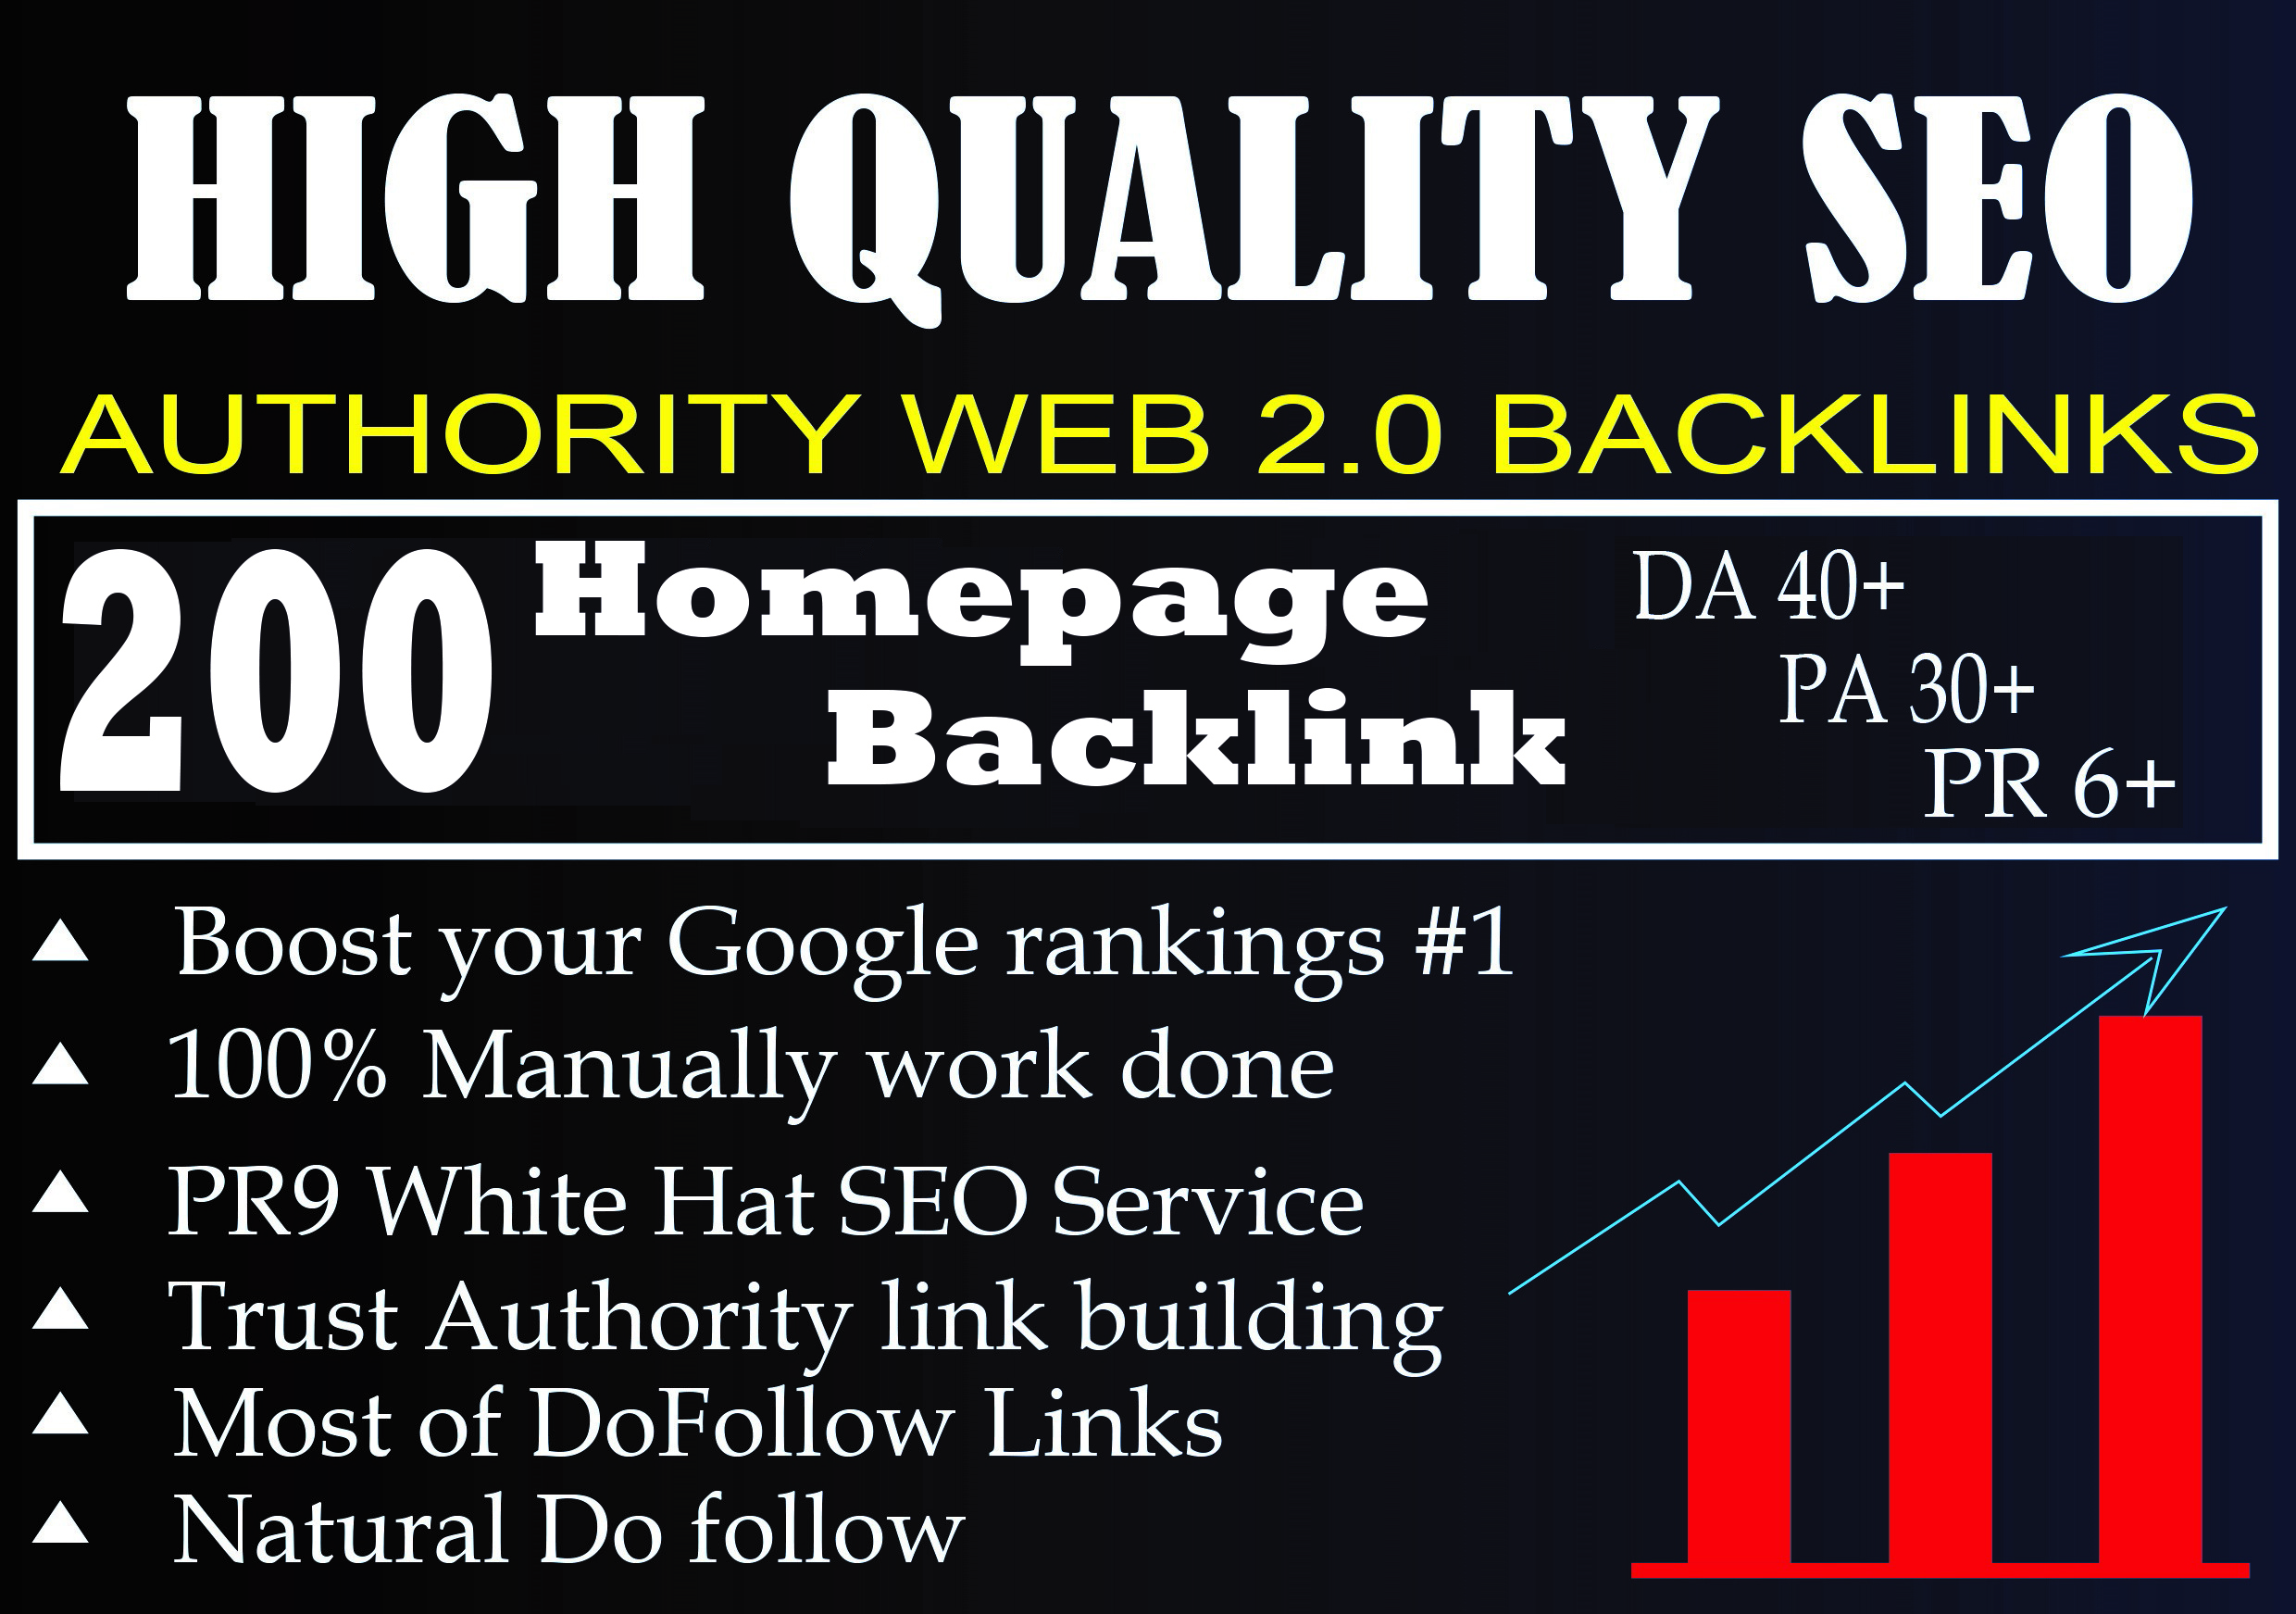 I Will Provide DA 40+ PA 30+ PR 6+ Web2.0 200 homepage Backlink in 100 do-follow in unique site